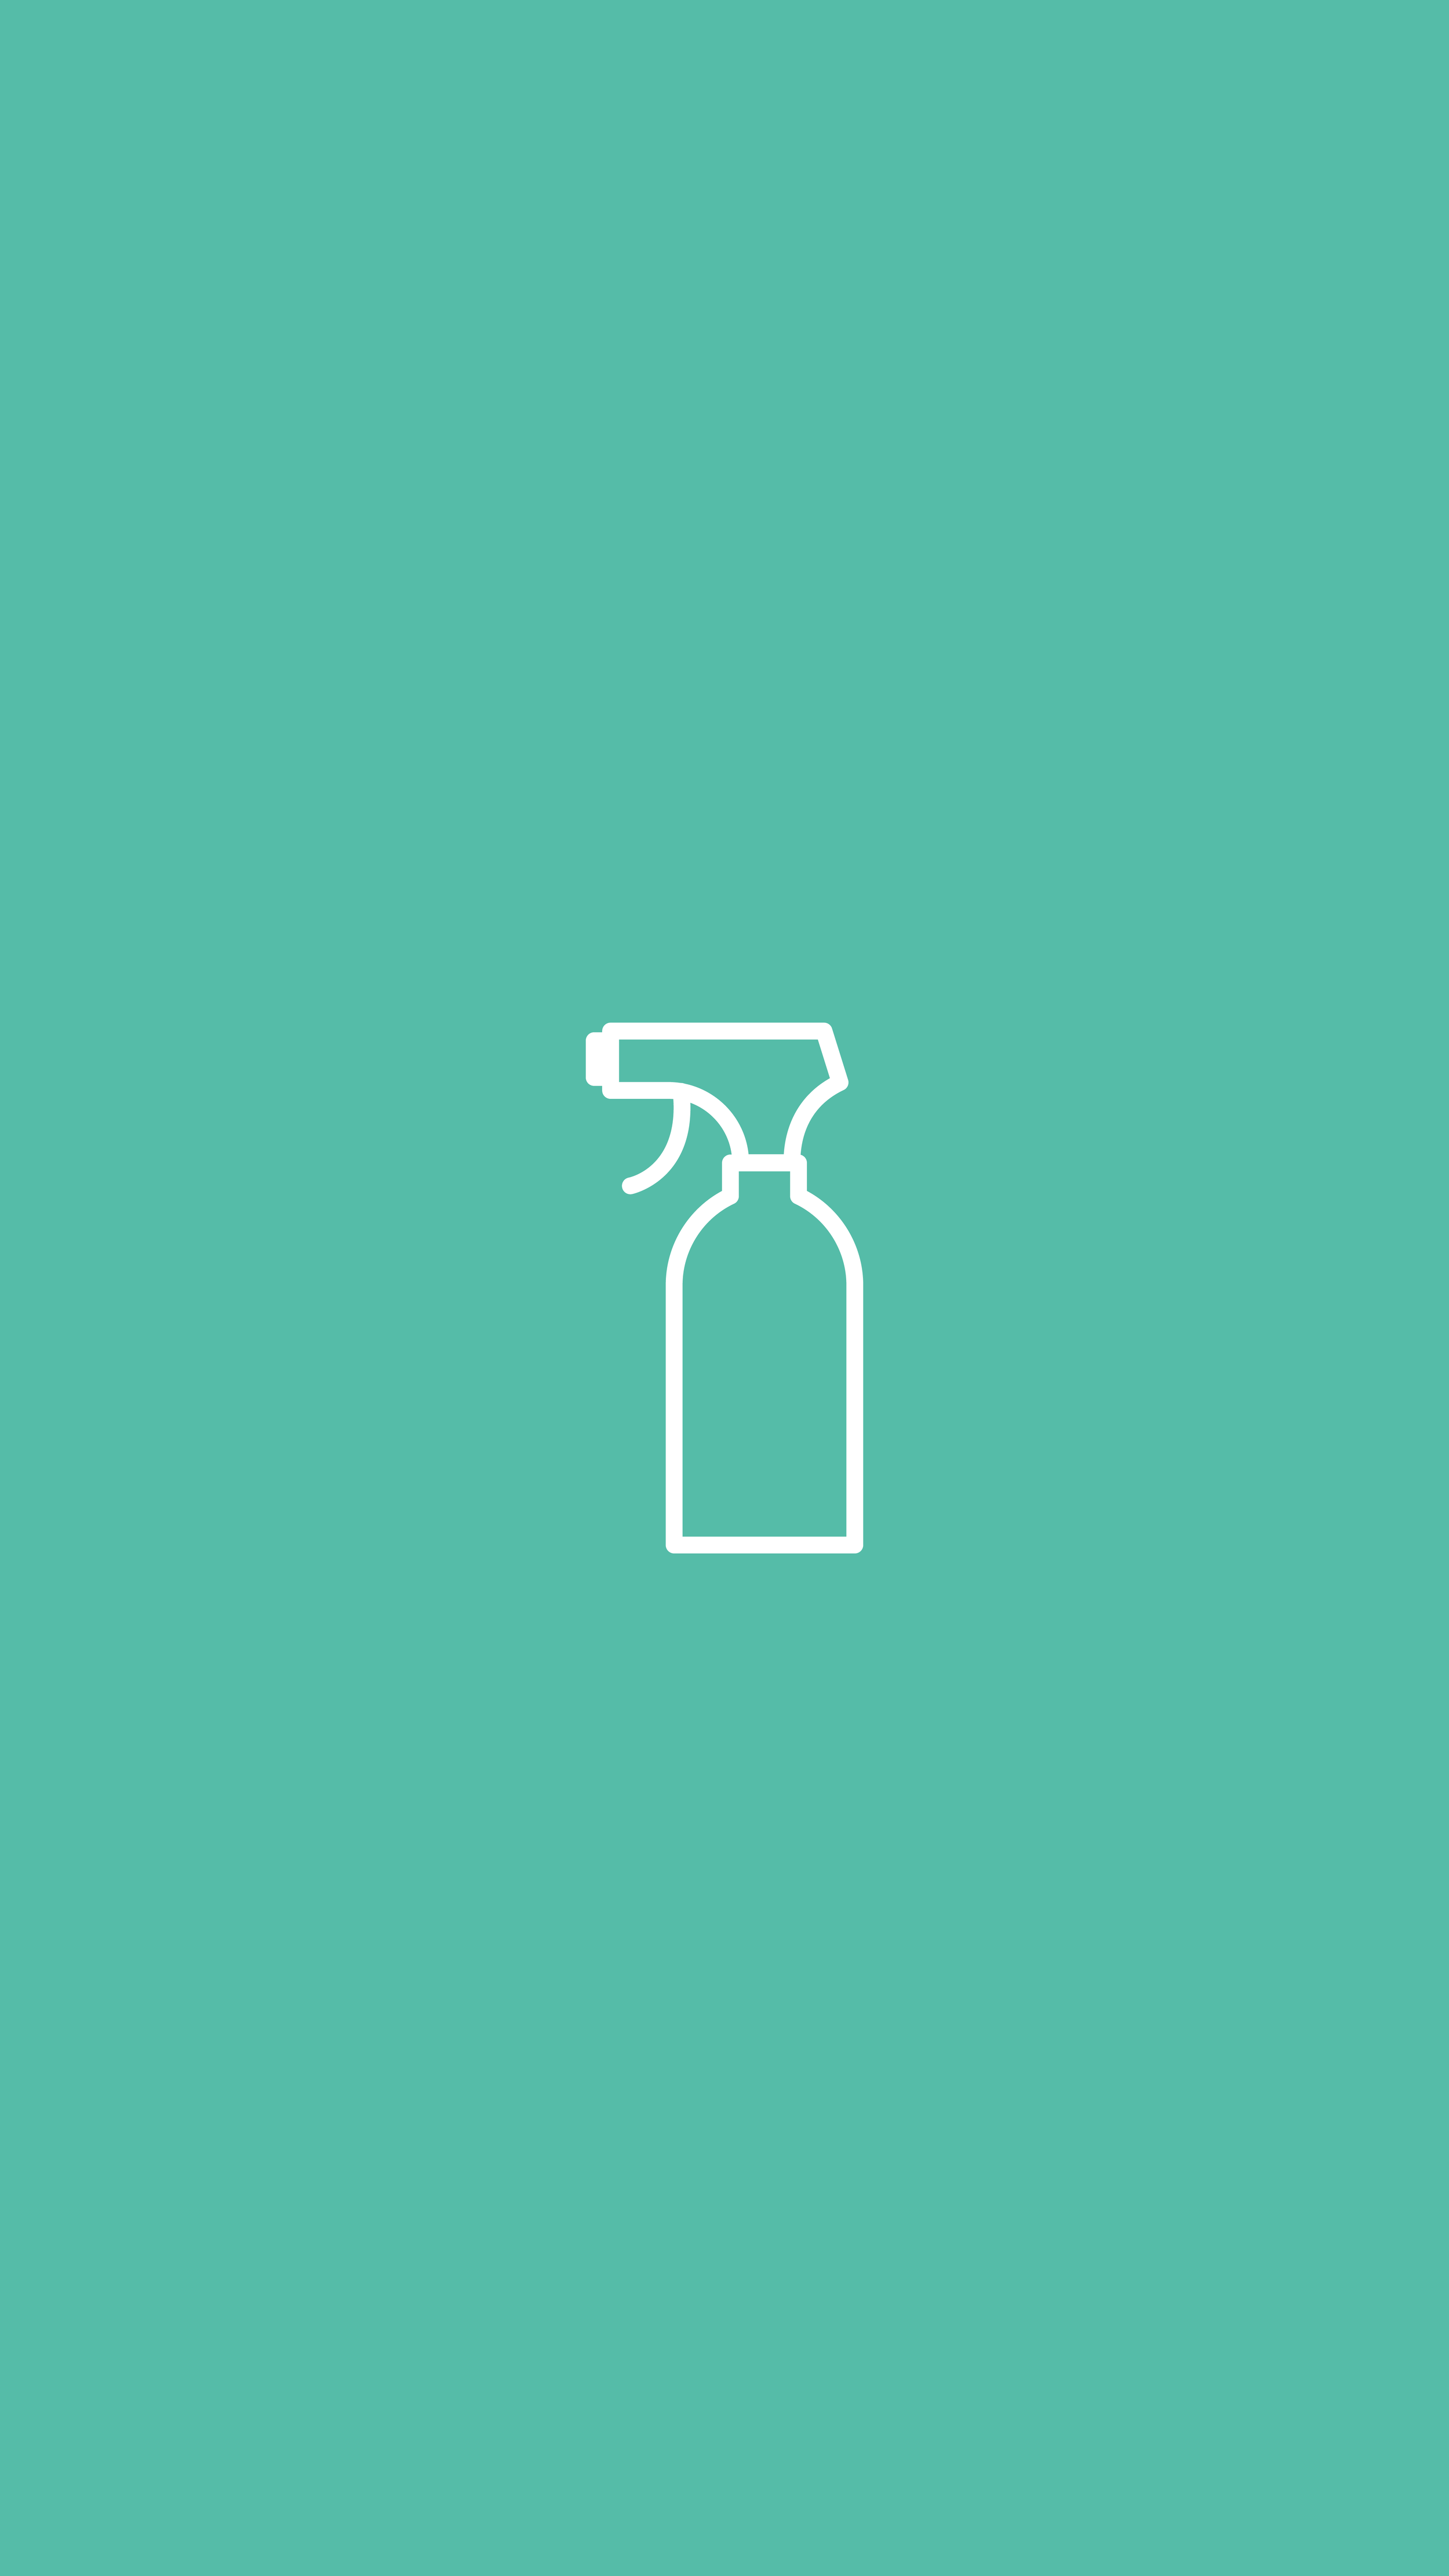 Cleaning, Cleaning Supplies